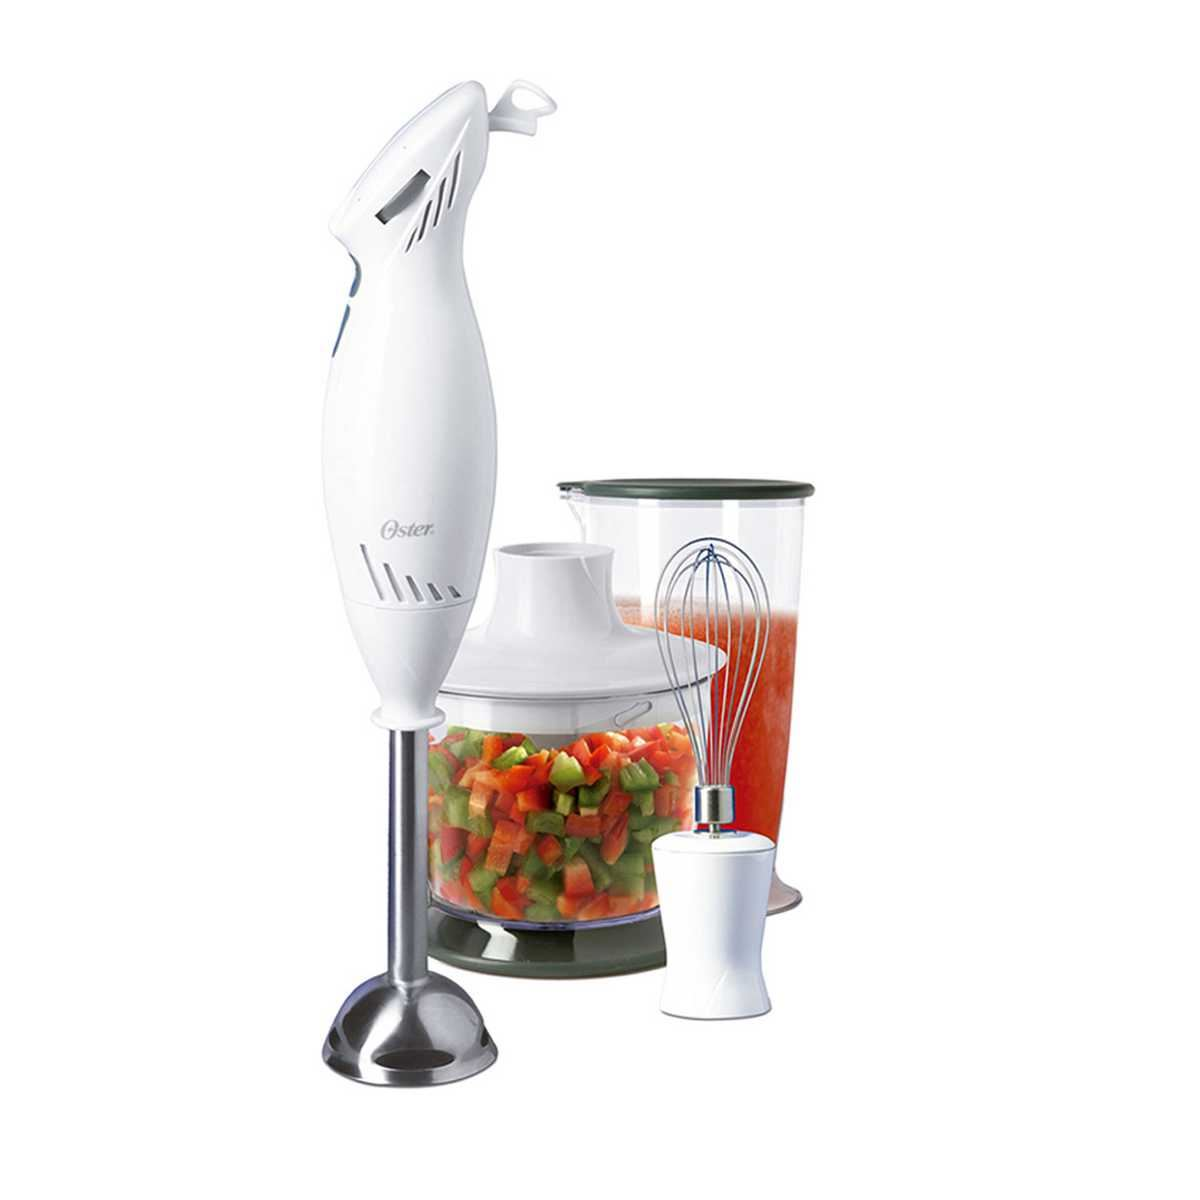 Picture of Oster Hand Blender 2616